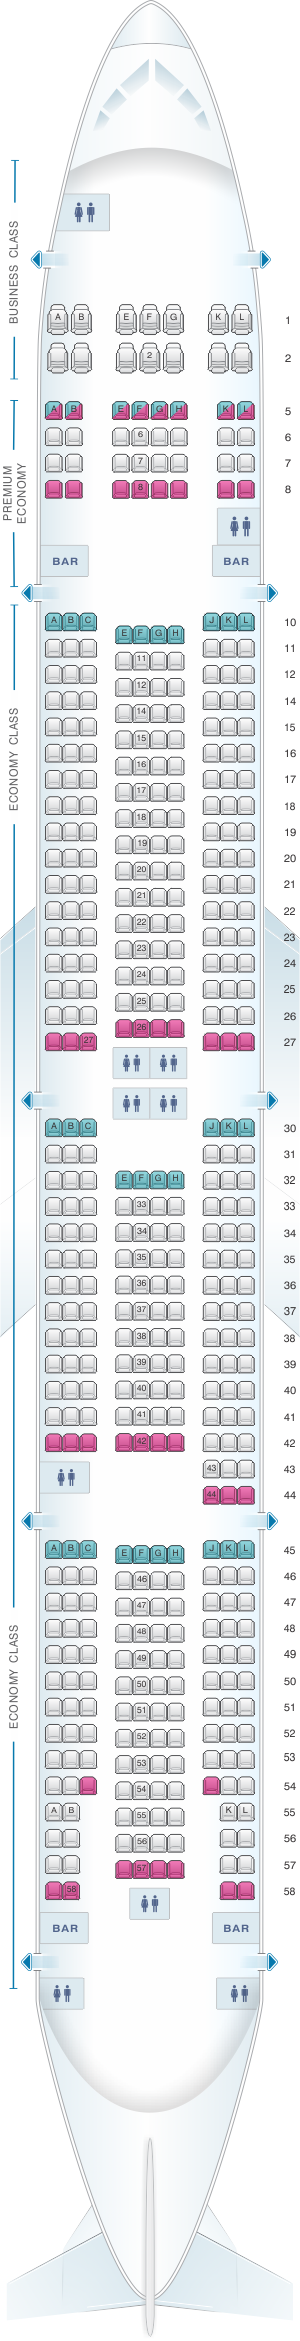 Seat Map Air France Boeing B777 300